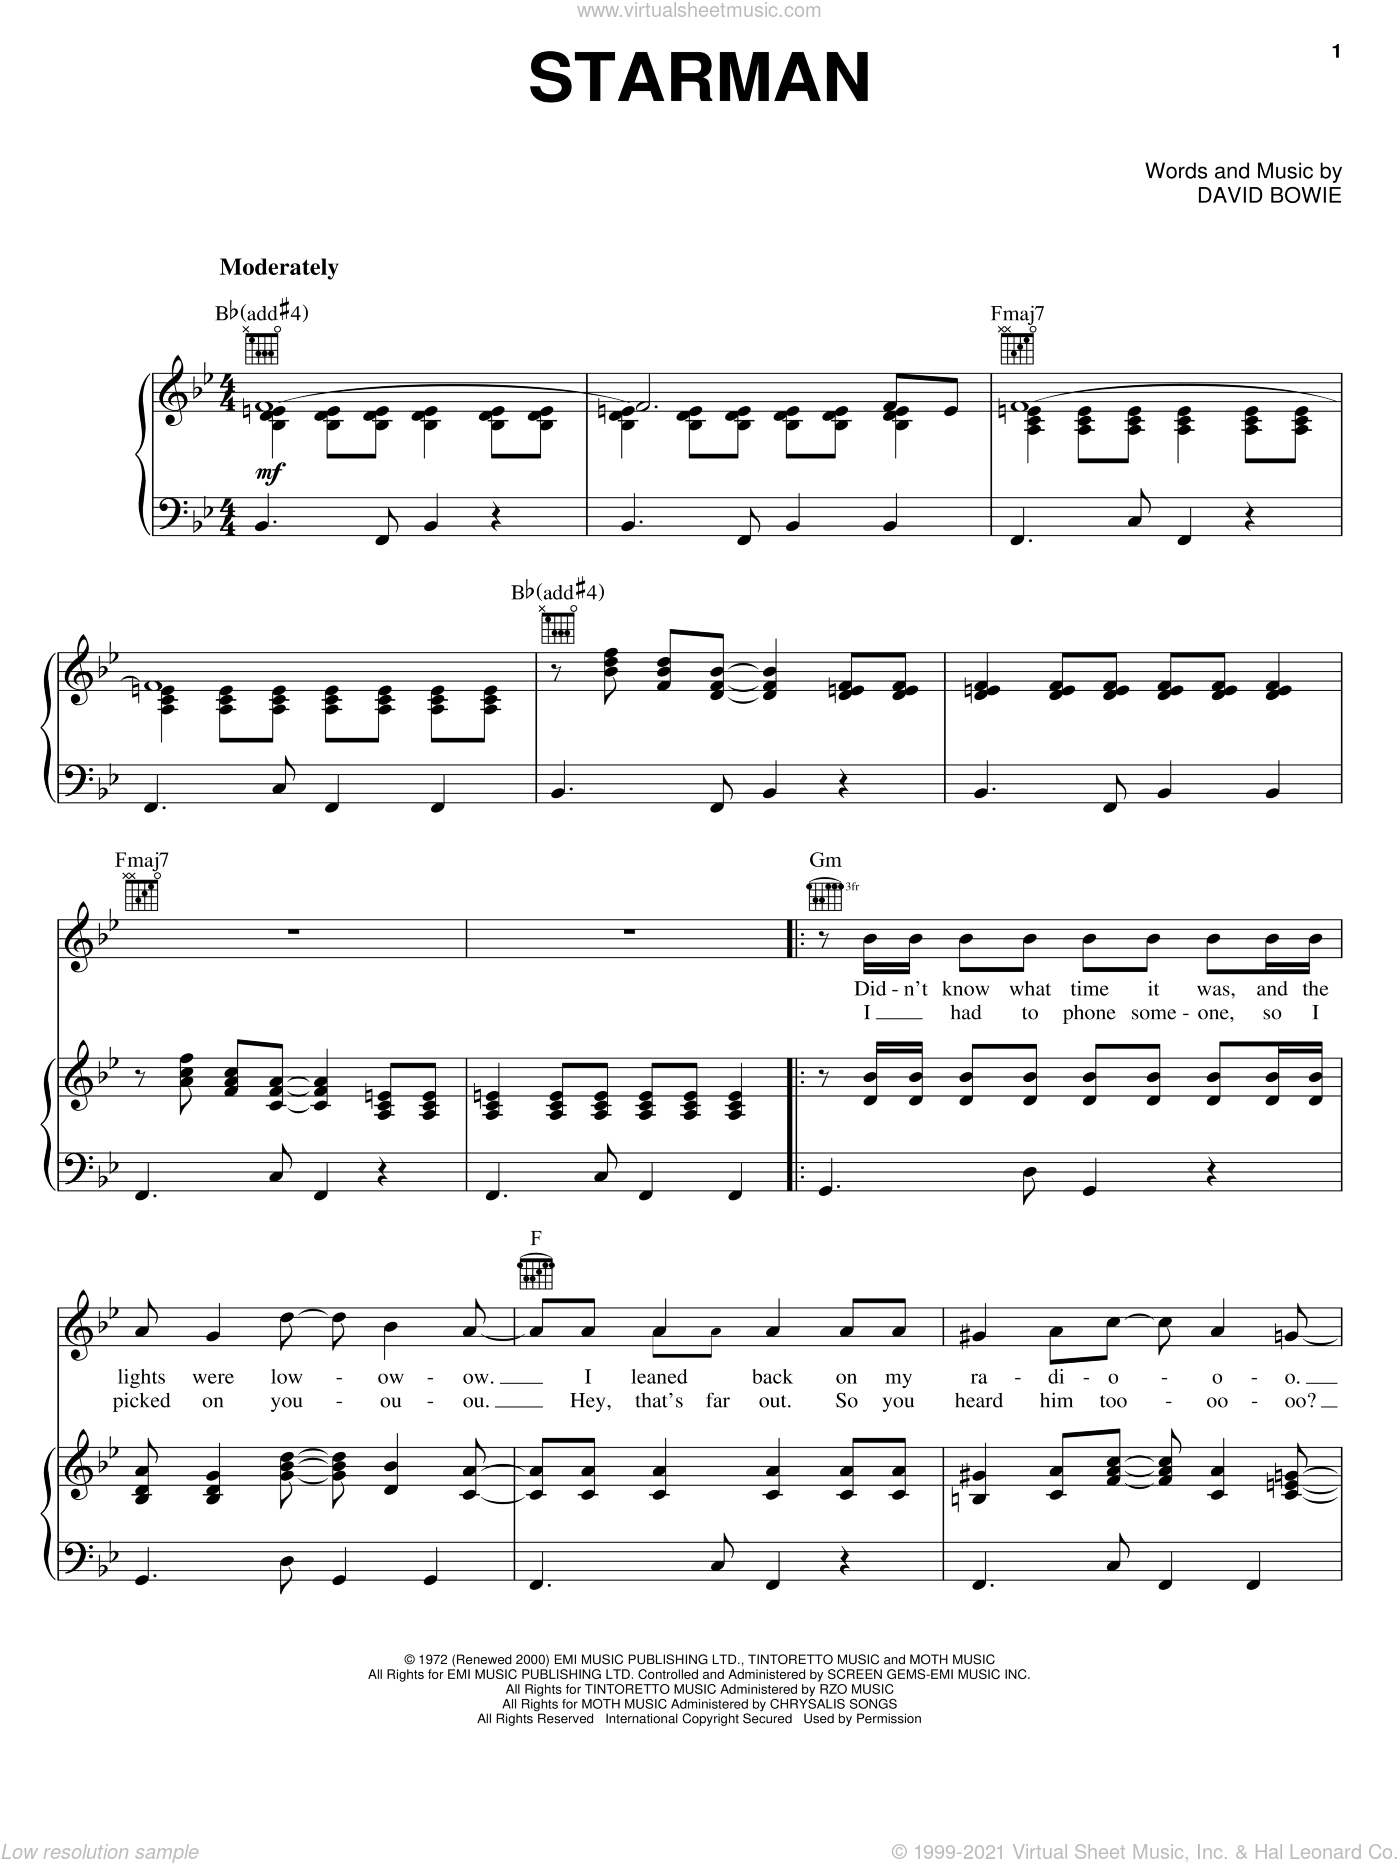 Starman sheet music for voice, piano or guitar by David Bowie, intermediate